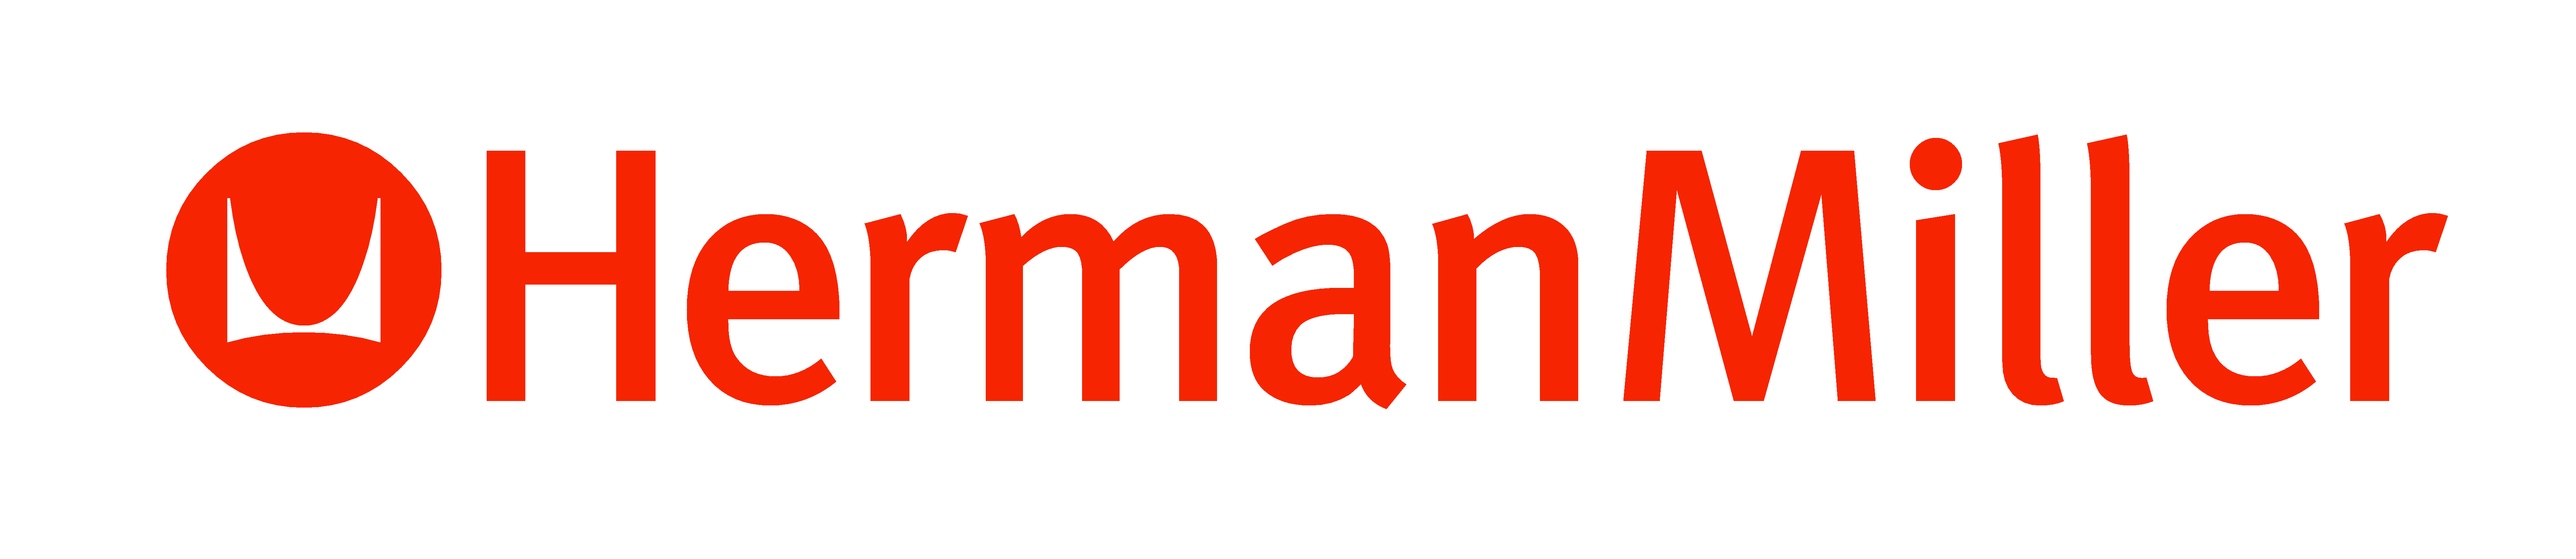 herman_miller_logo_300dpi_huge